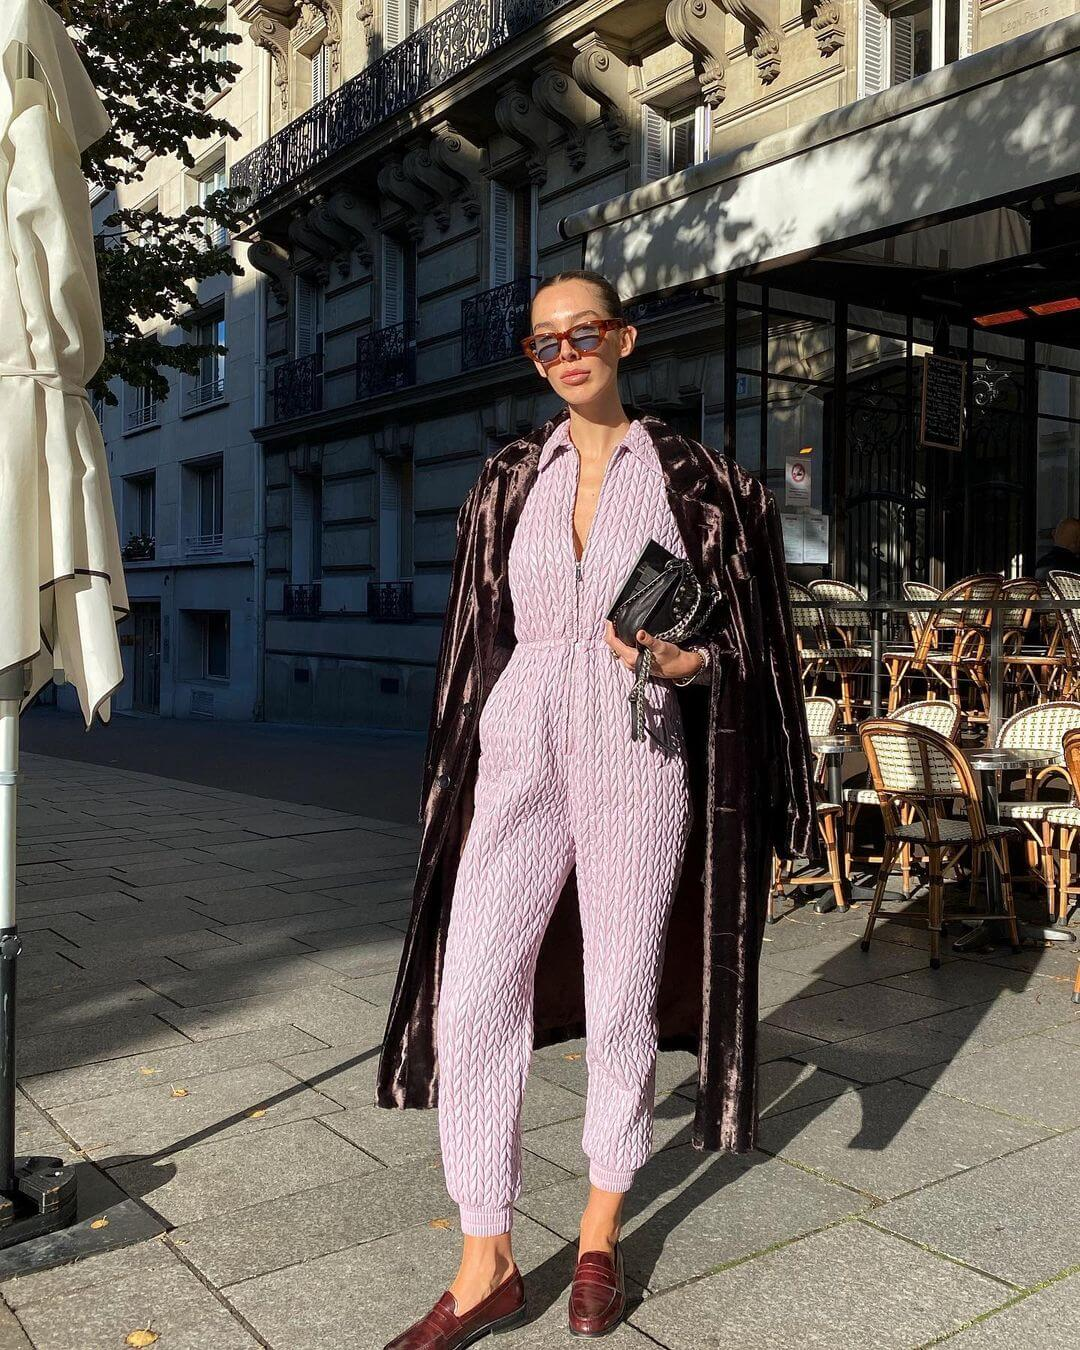 A Chic Loungewear Look That Can Pass For Polished Day Wear